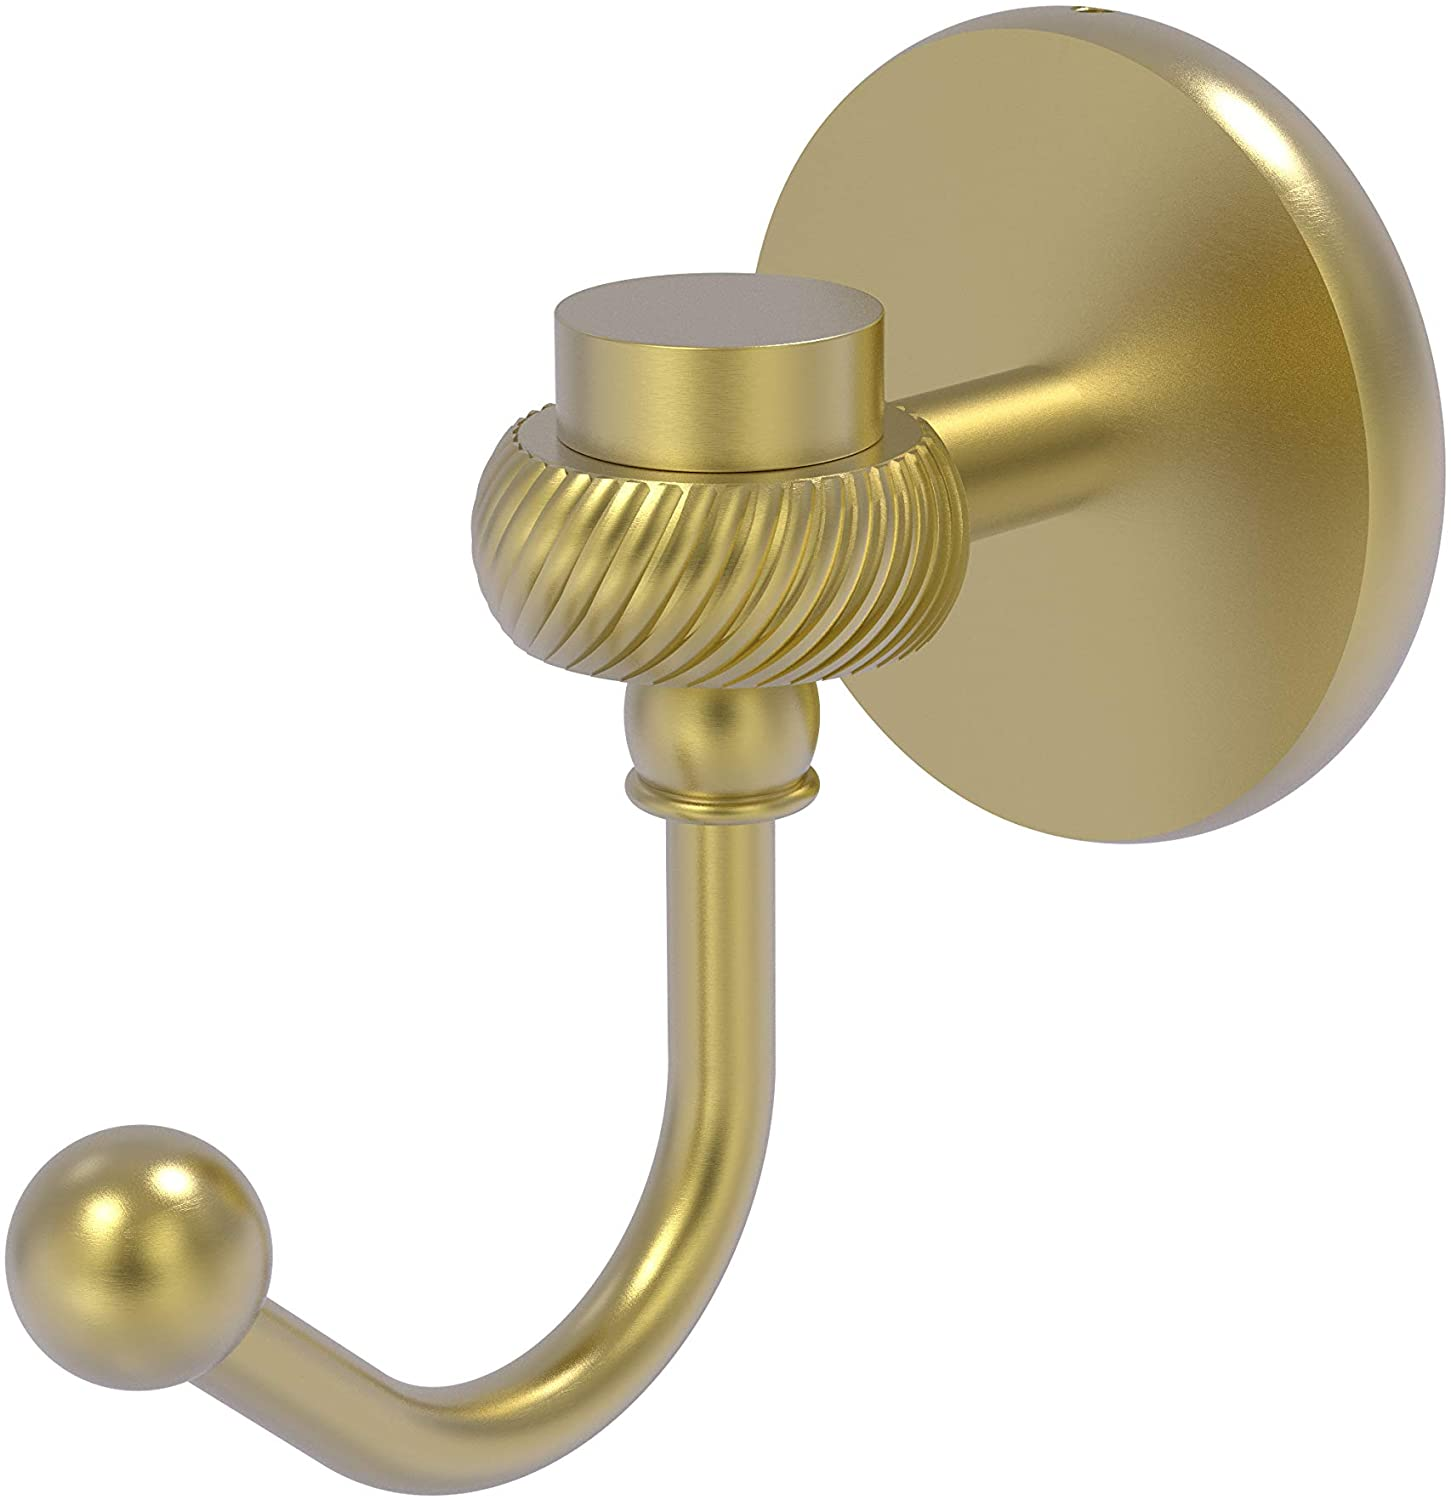 Allied Brass Satellite Orbit One Twisted Accents Robe Hook, Satin Brass